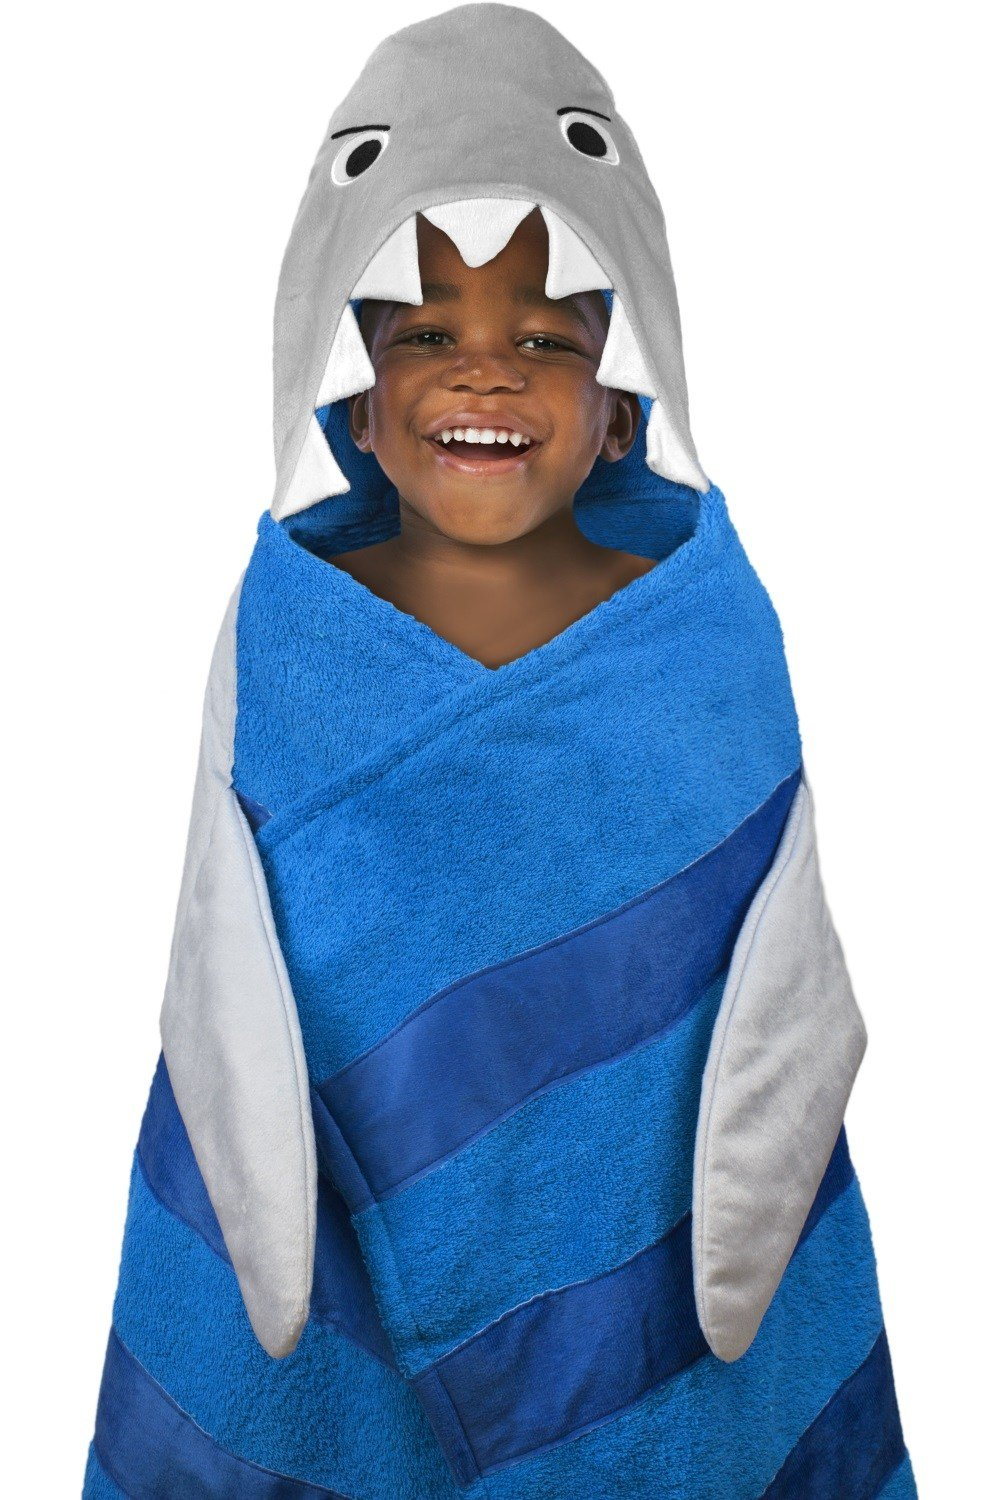 Hooded Towel for Kids, Oversize Cotton Character Hood Towel - Makes Getting Dry Fun - Ideal Beach Towels for Toddlers & Small Children - Use at The Pool or Bath Time, 26 x 45'', Grey Shark